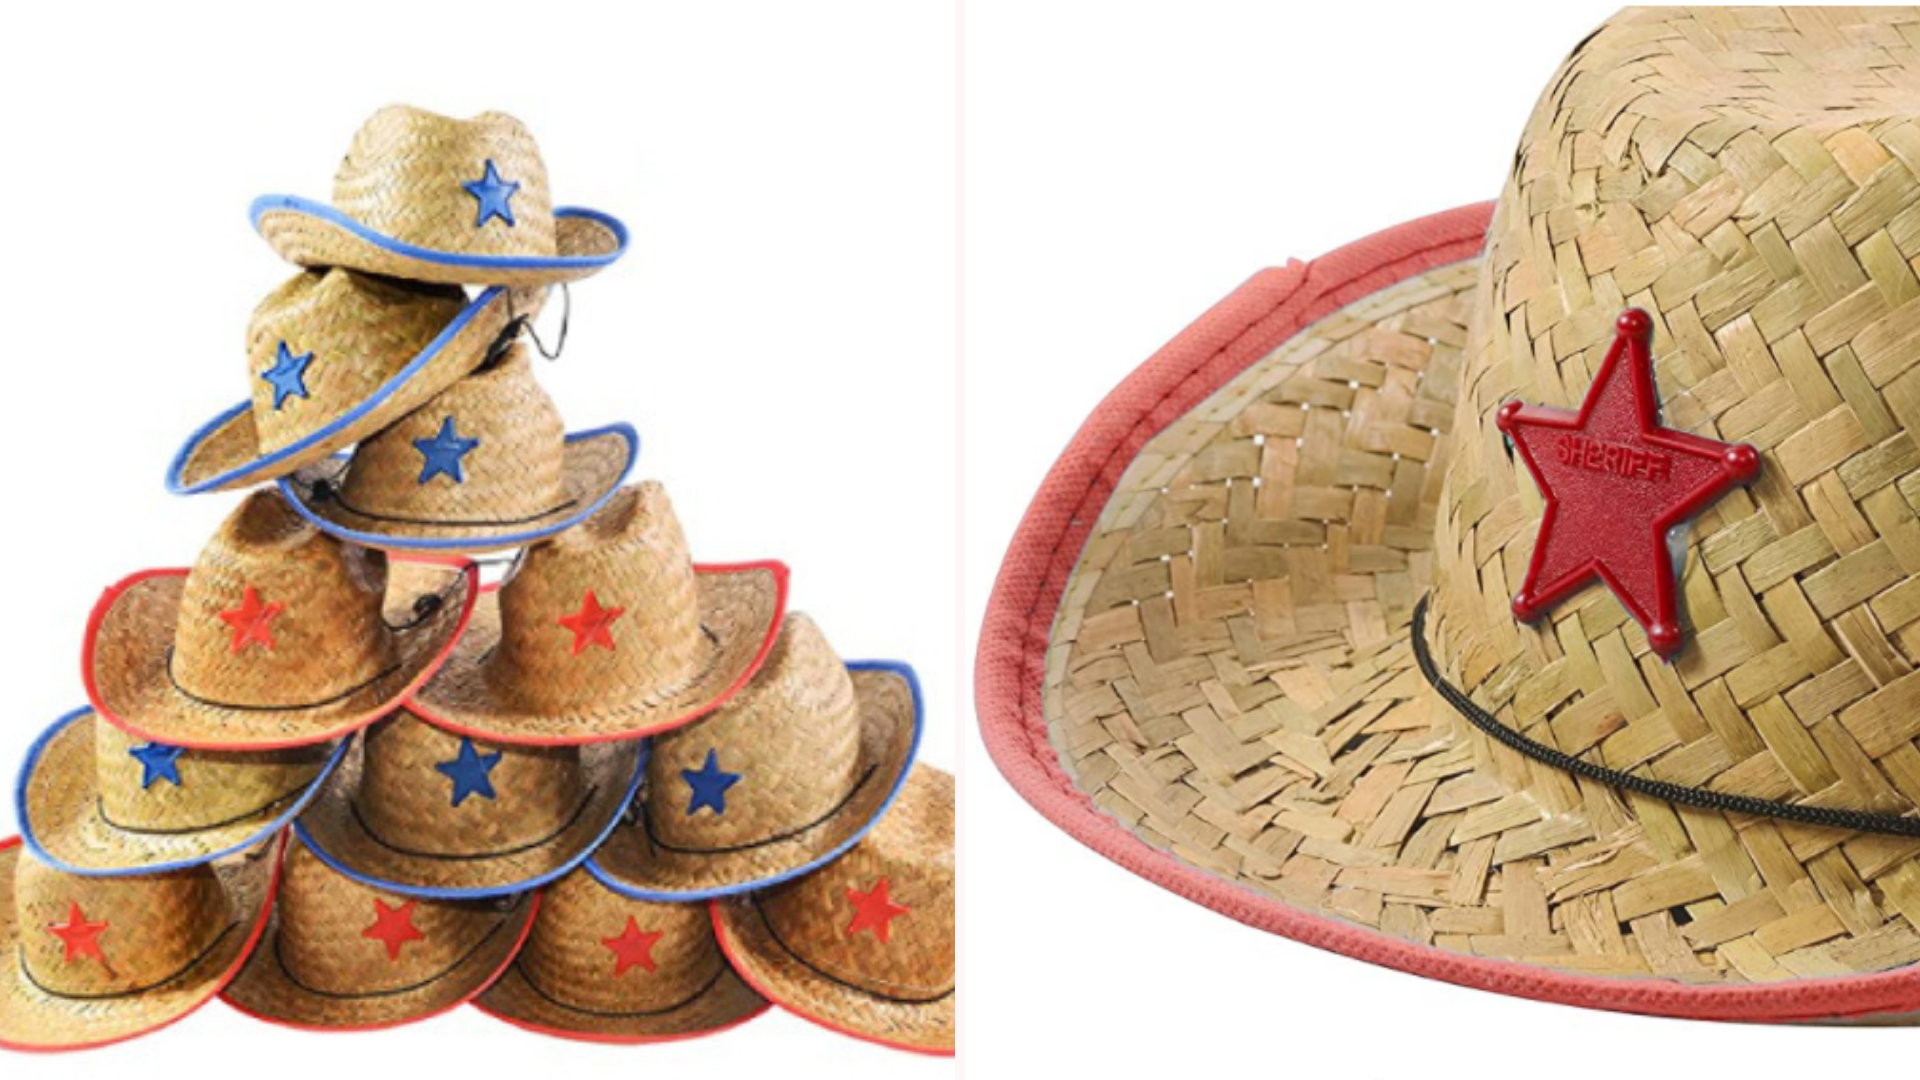 On the left, a pyramid stack of straw cowboy hats for children that measure seven inches in diameter and feature a chinstrap. On the left, a close up view of the cowboy hat showcases the red plastic sheriff's badge at the center of its crown, and the red ribbon lining its brim.